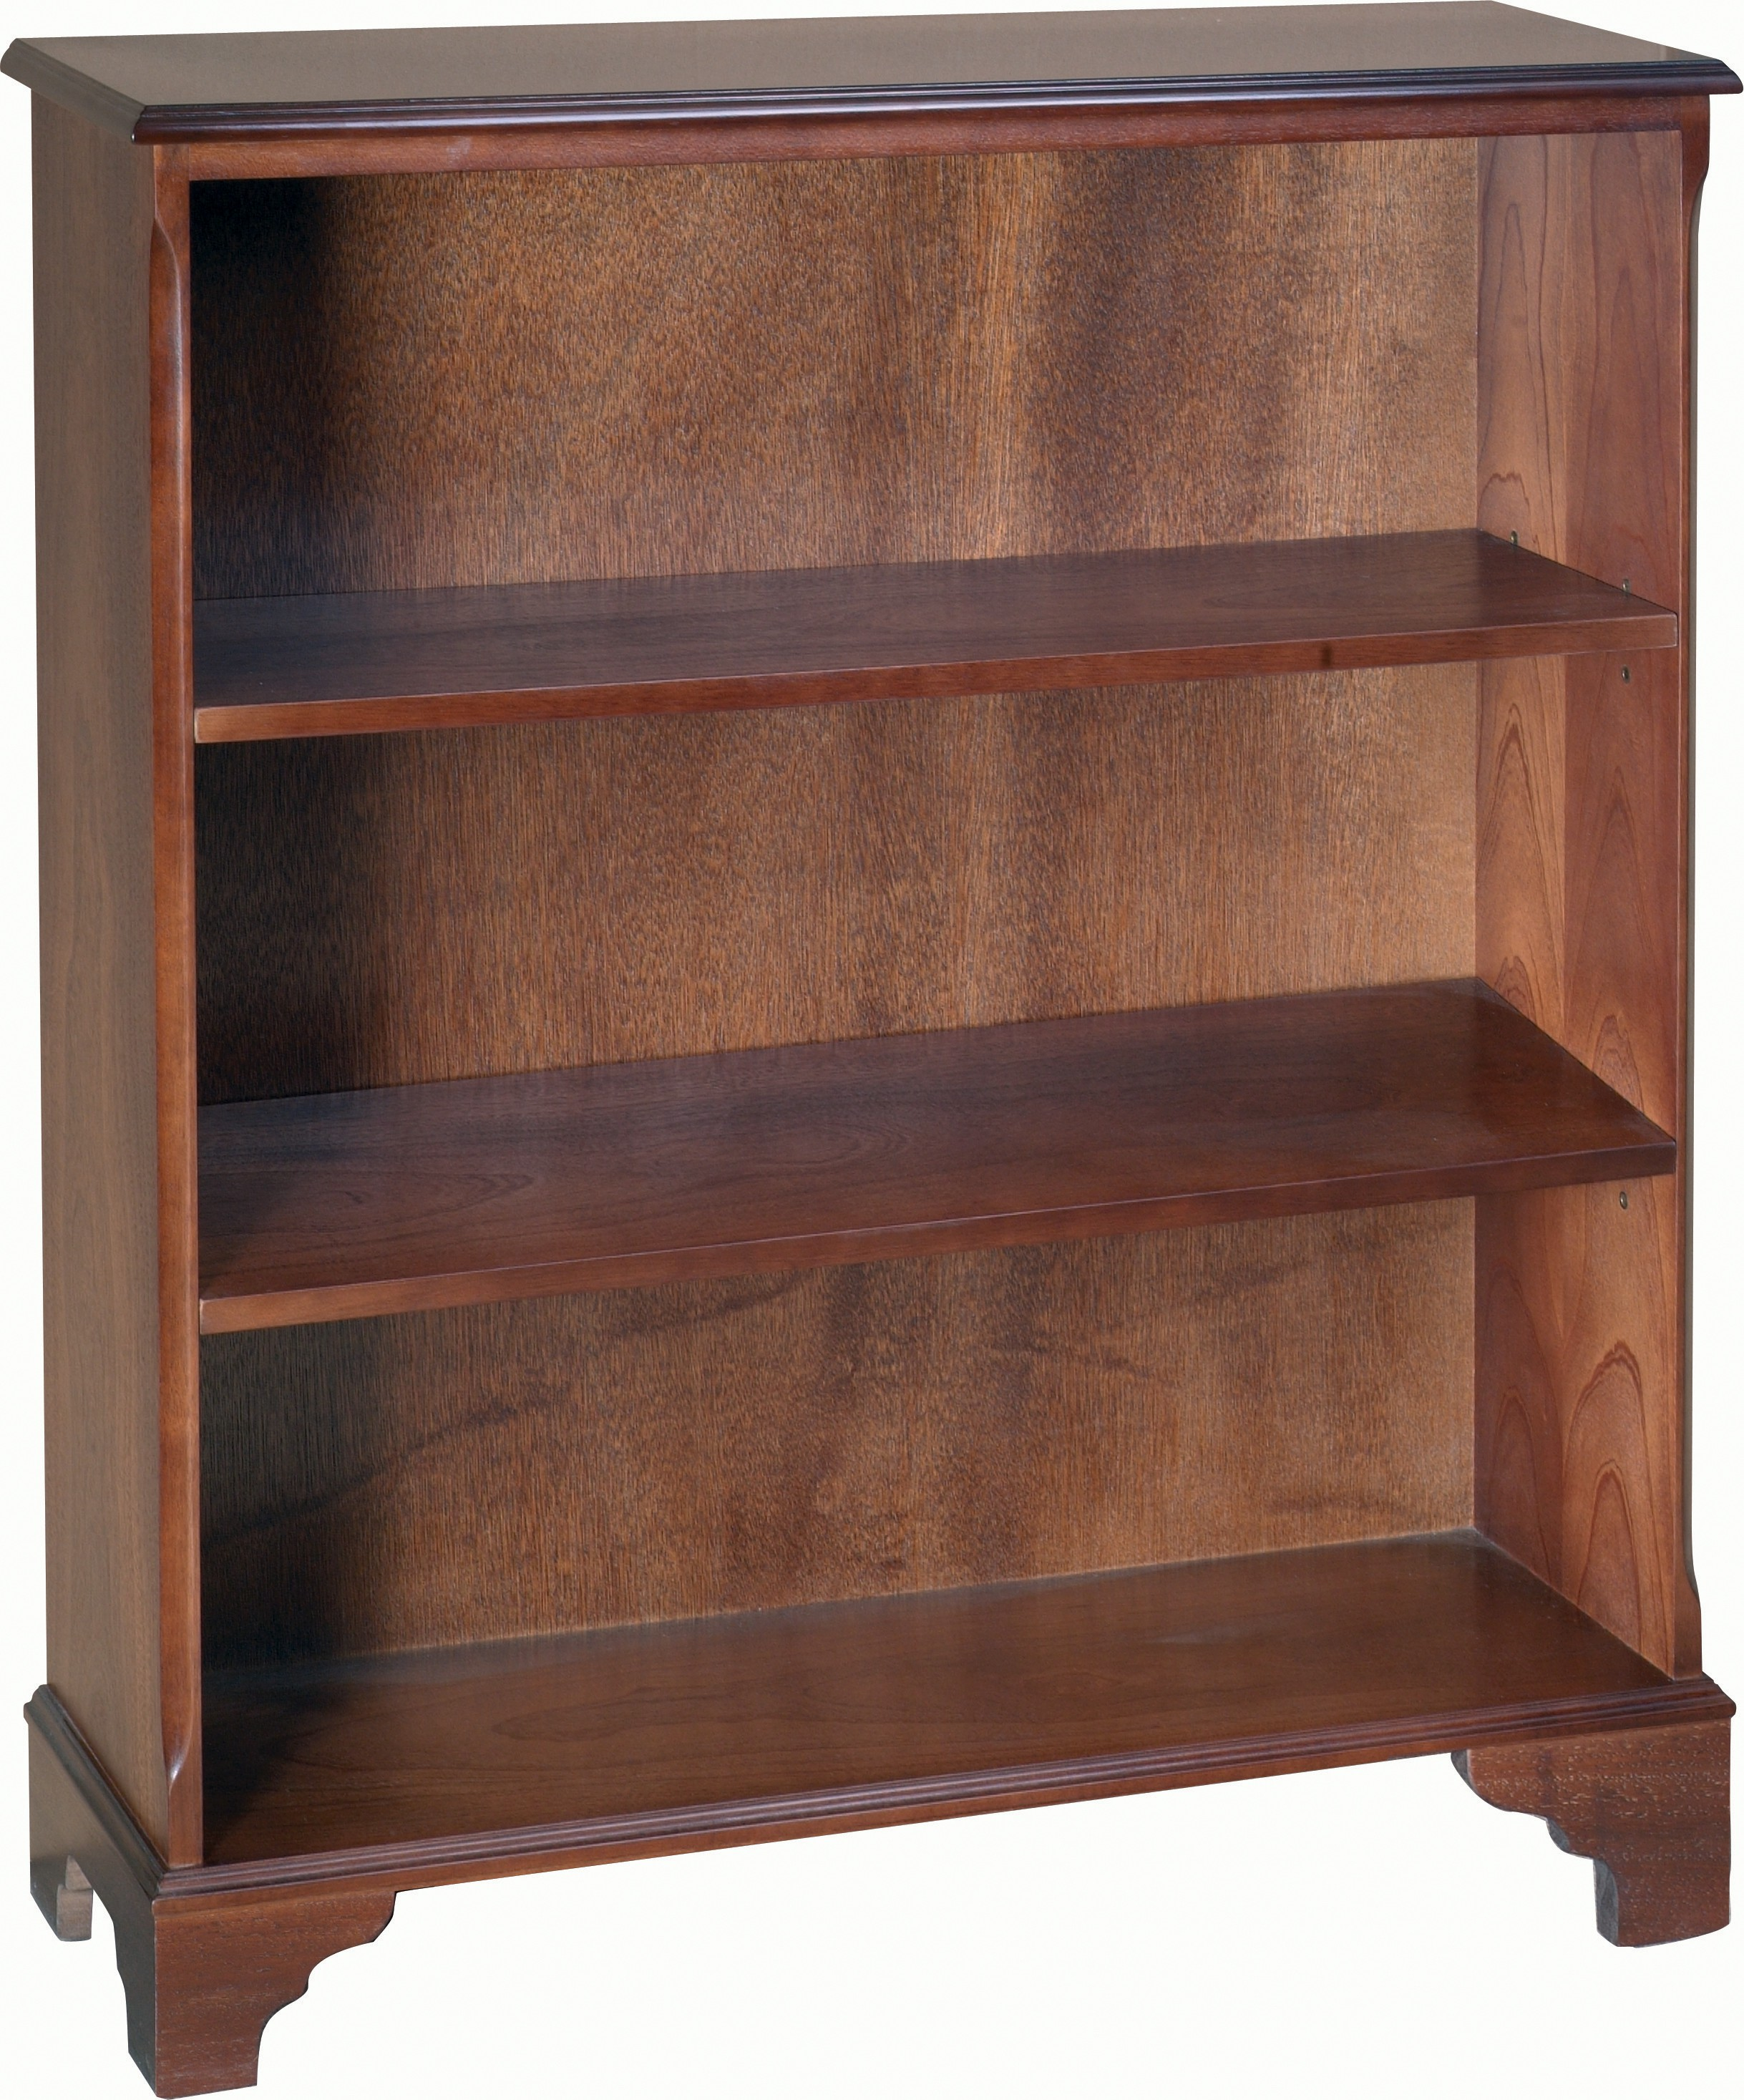 Wide Open Bookcase 2 Shelves